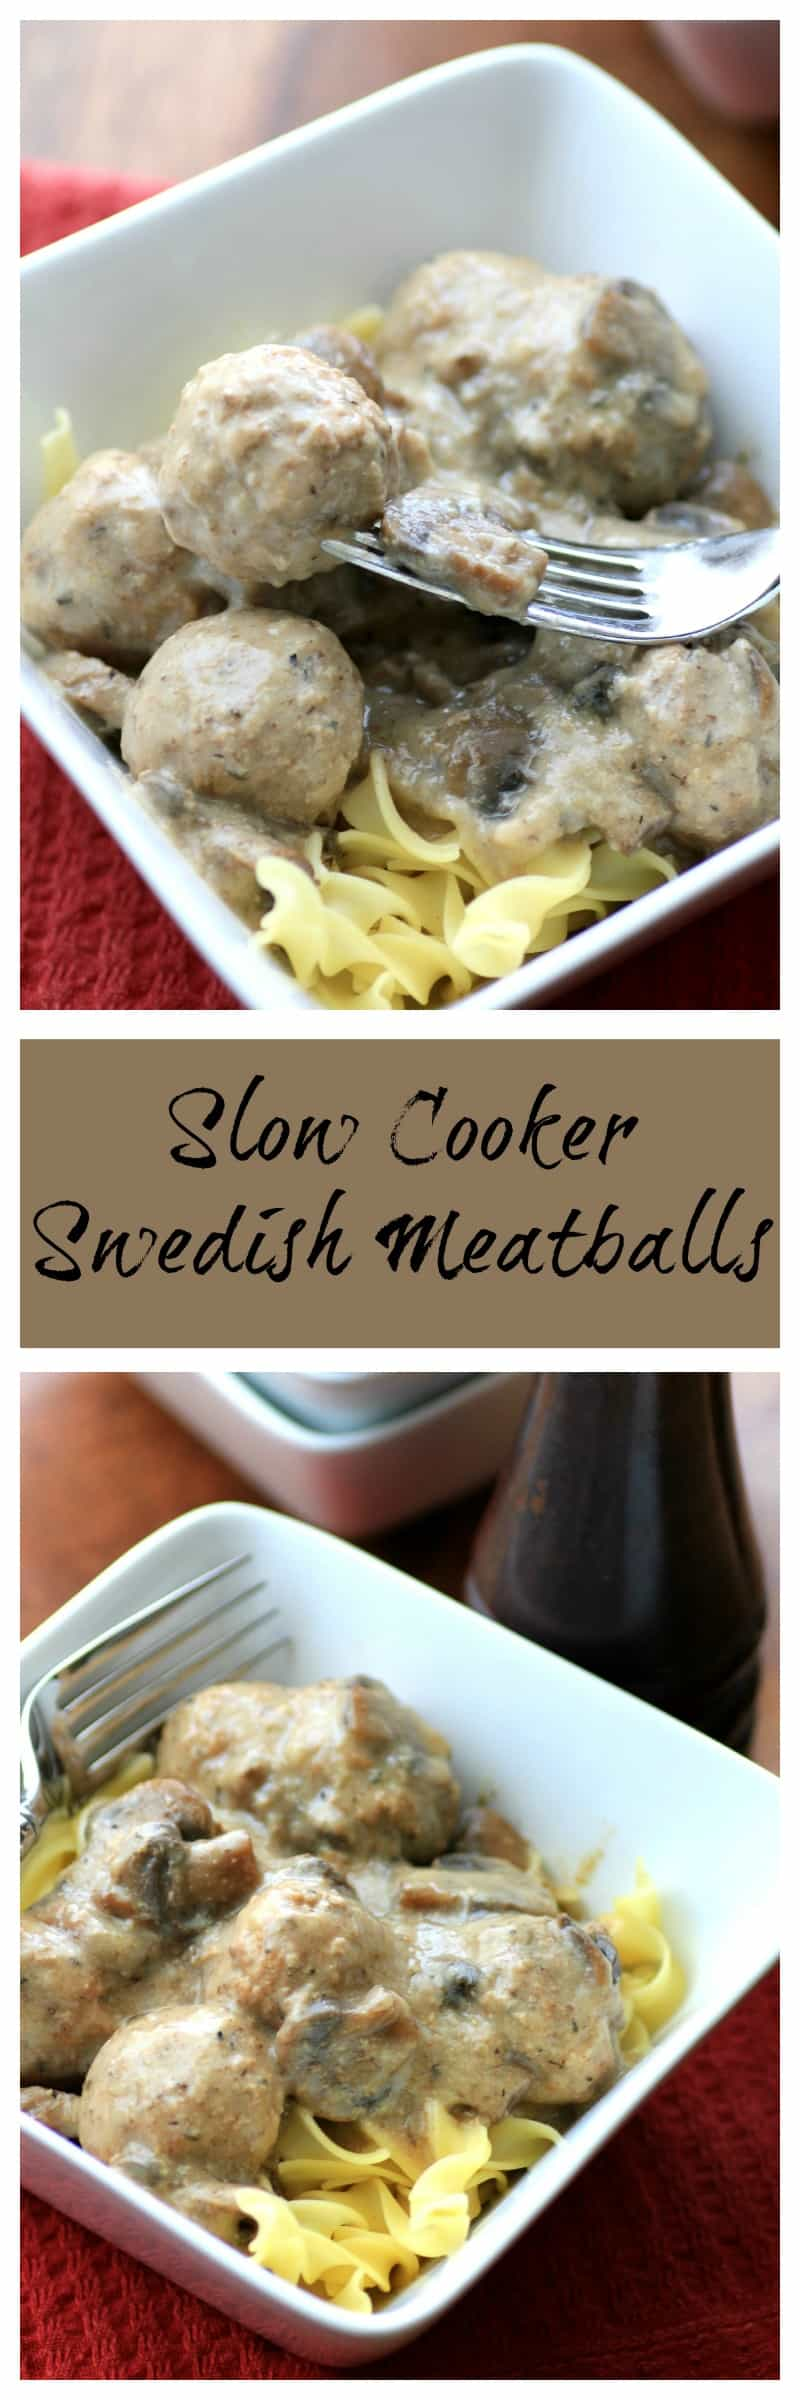 how to cook swedish meatballs in a slow cooker